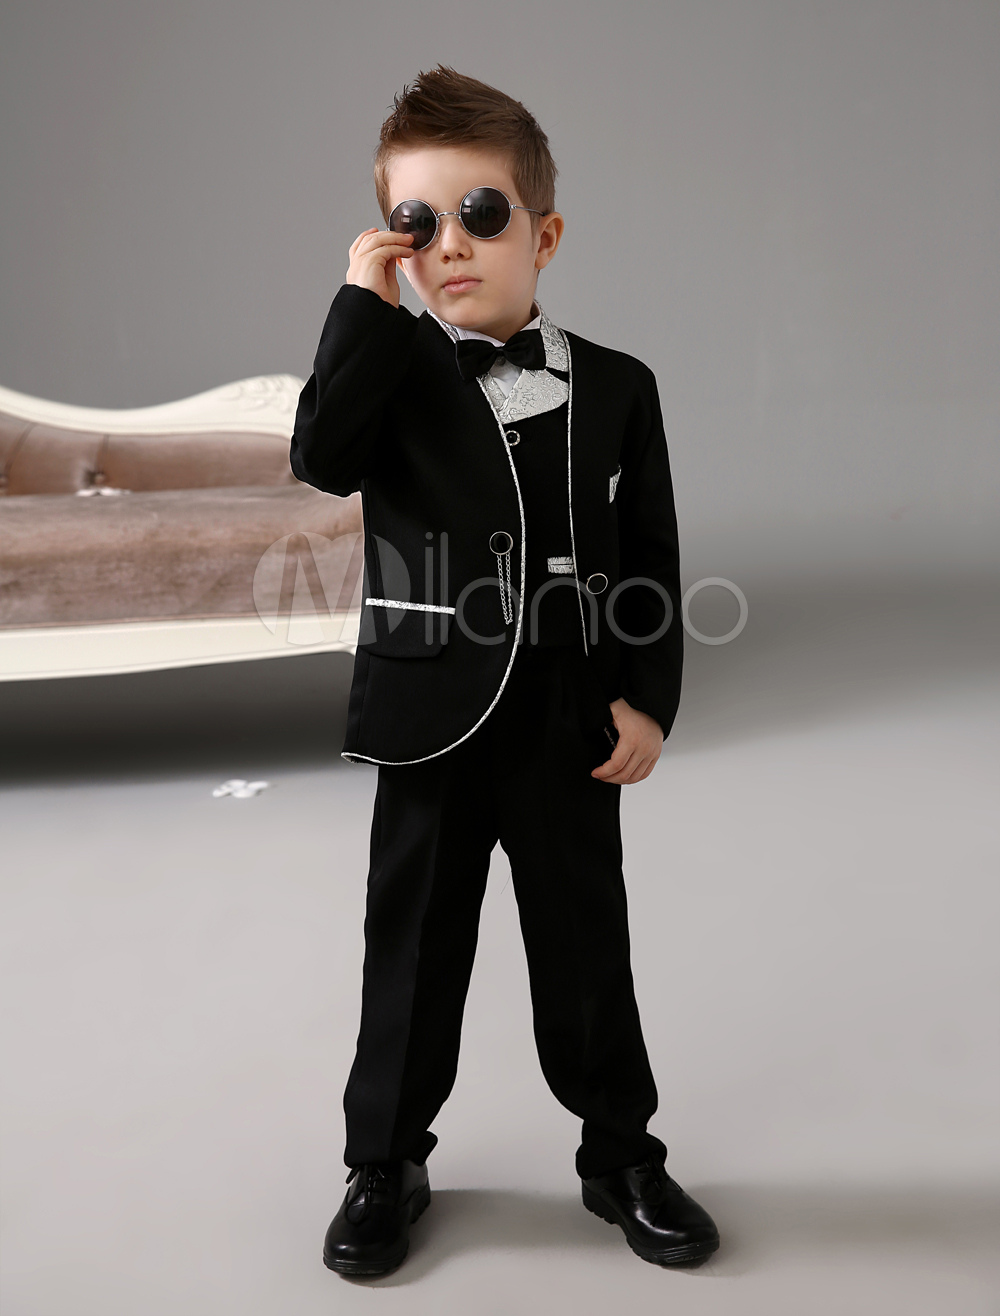 Black Jacket Patterned Lapel Chained Kid's Ring Bearer Suits